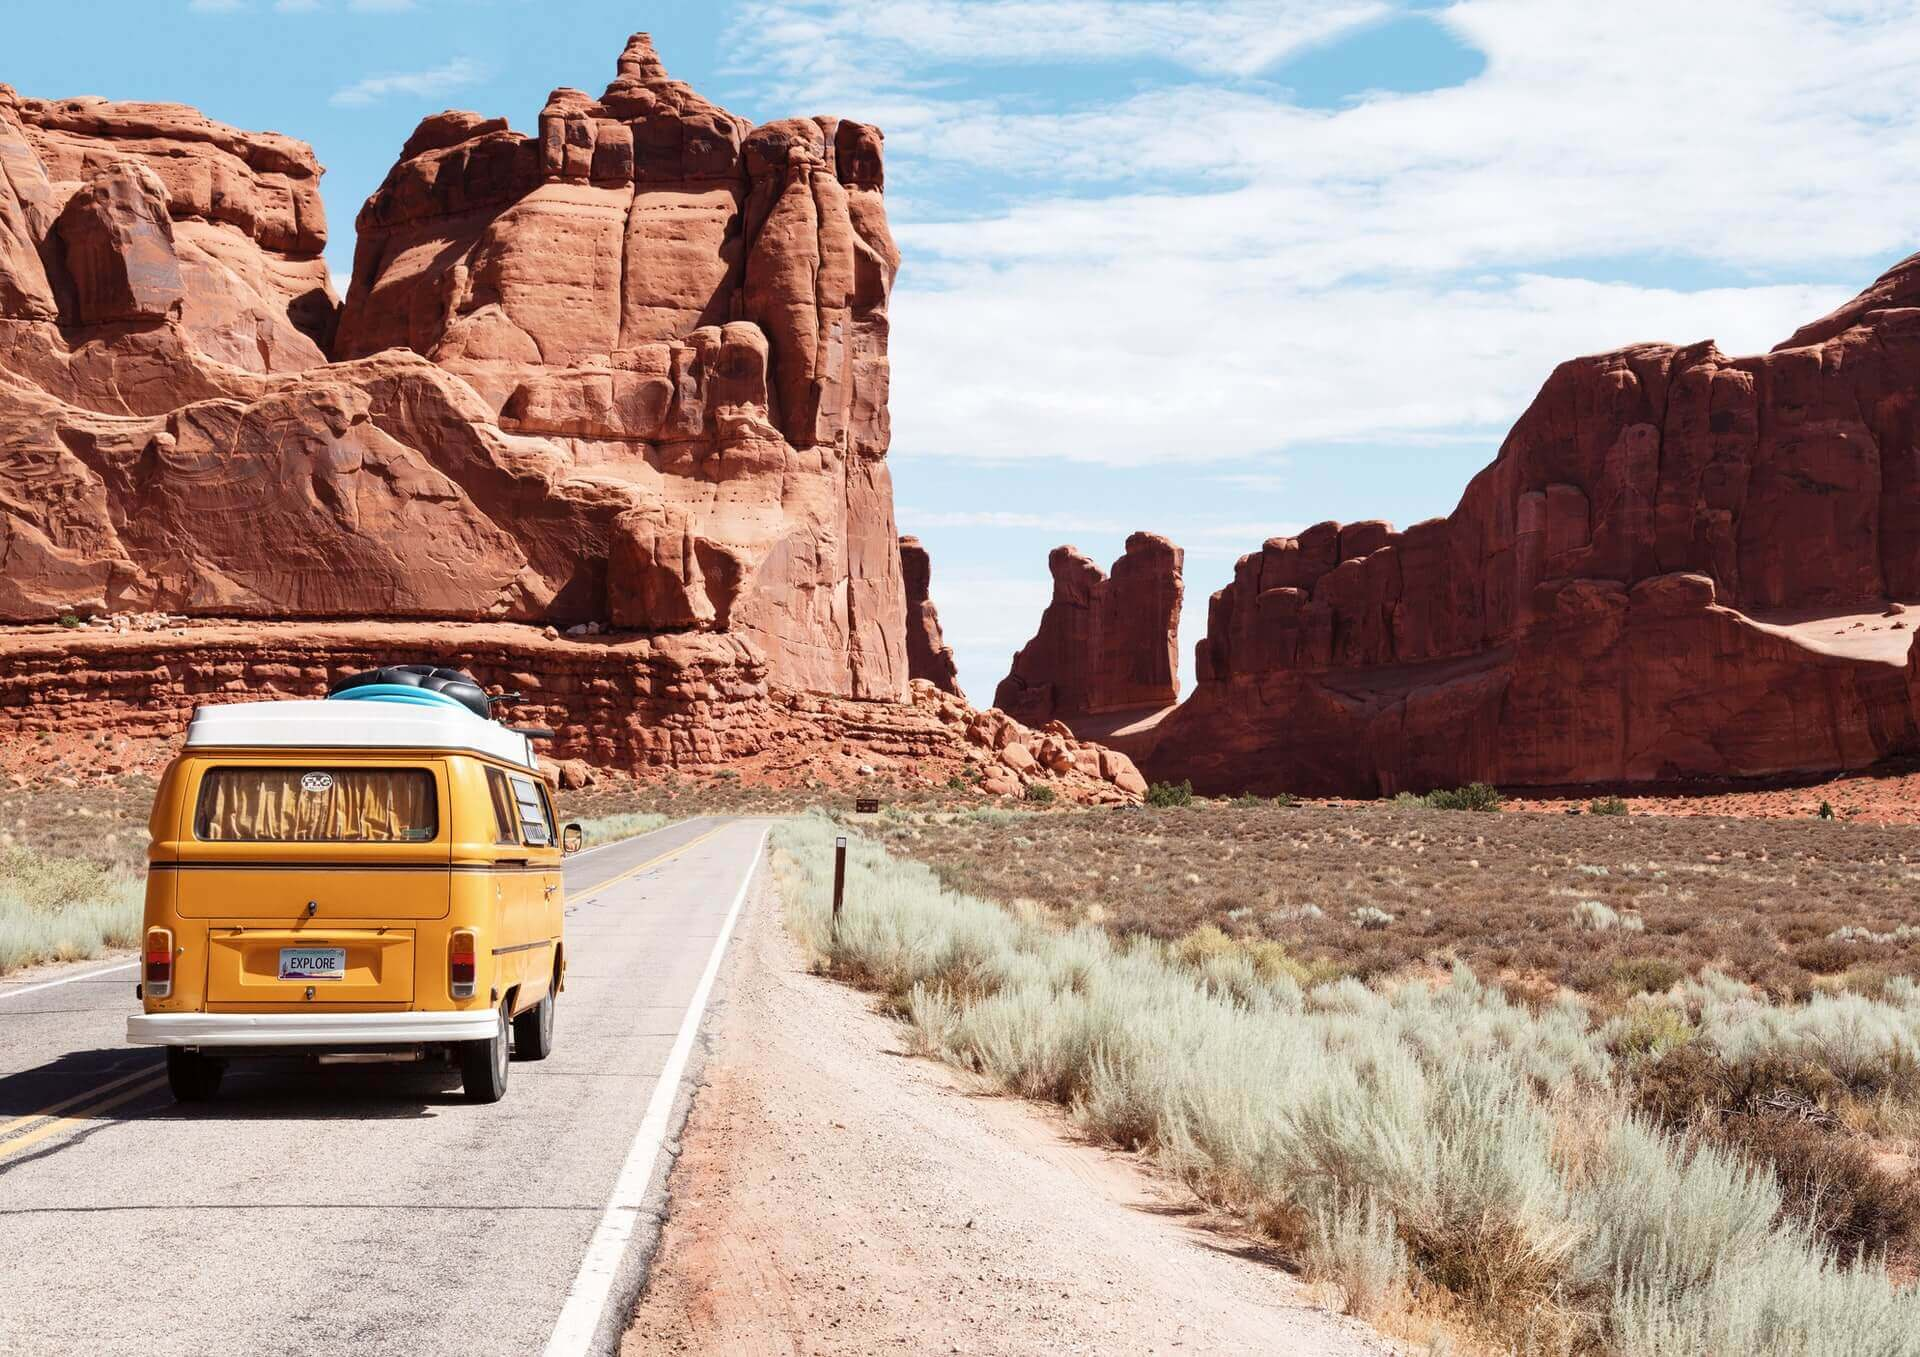 A yellow Volkswagon on a road near orange rock formations